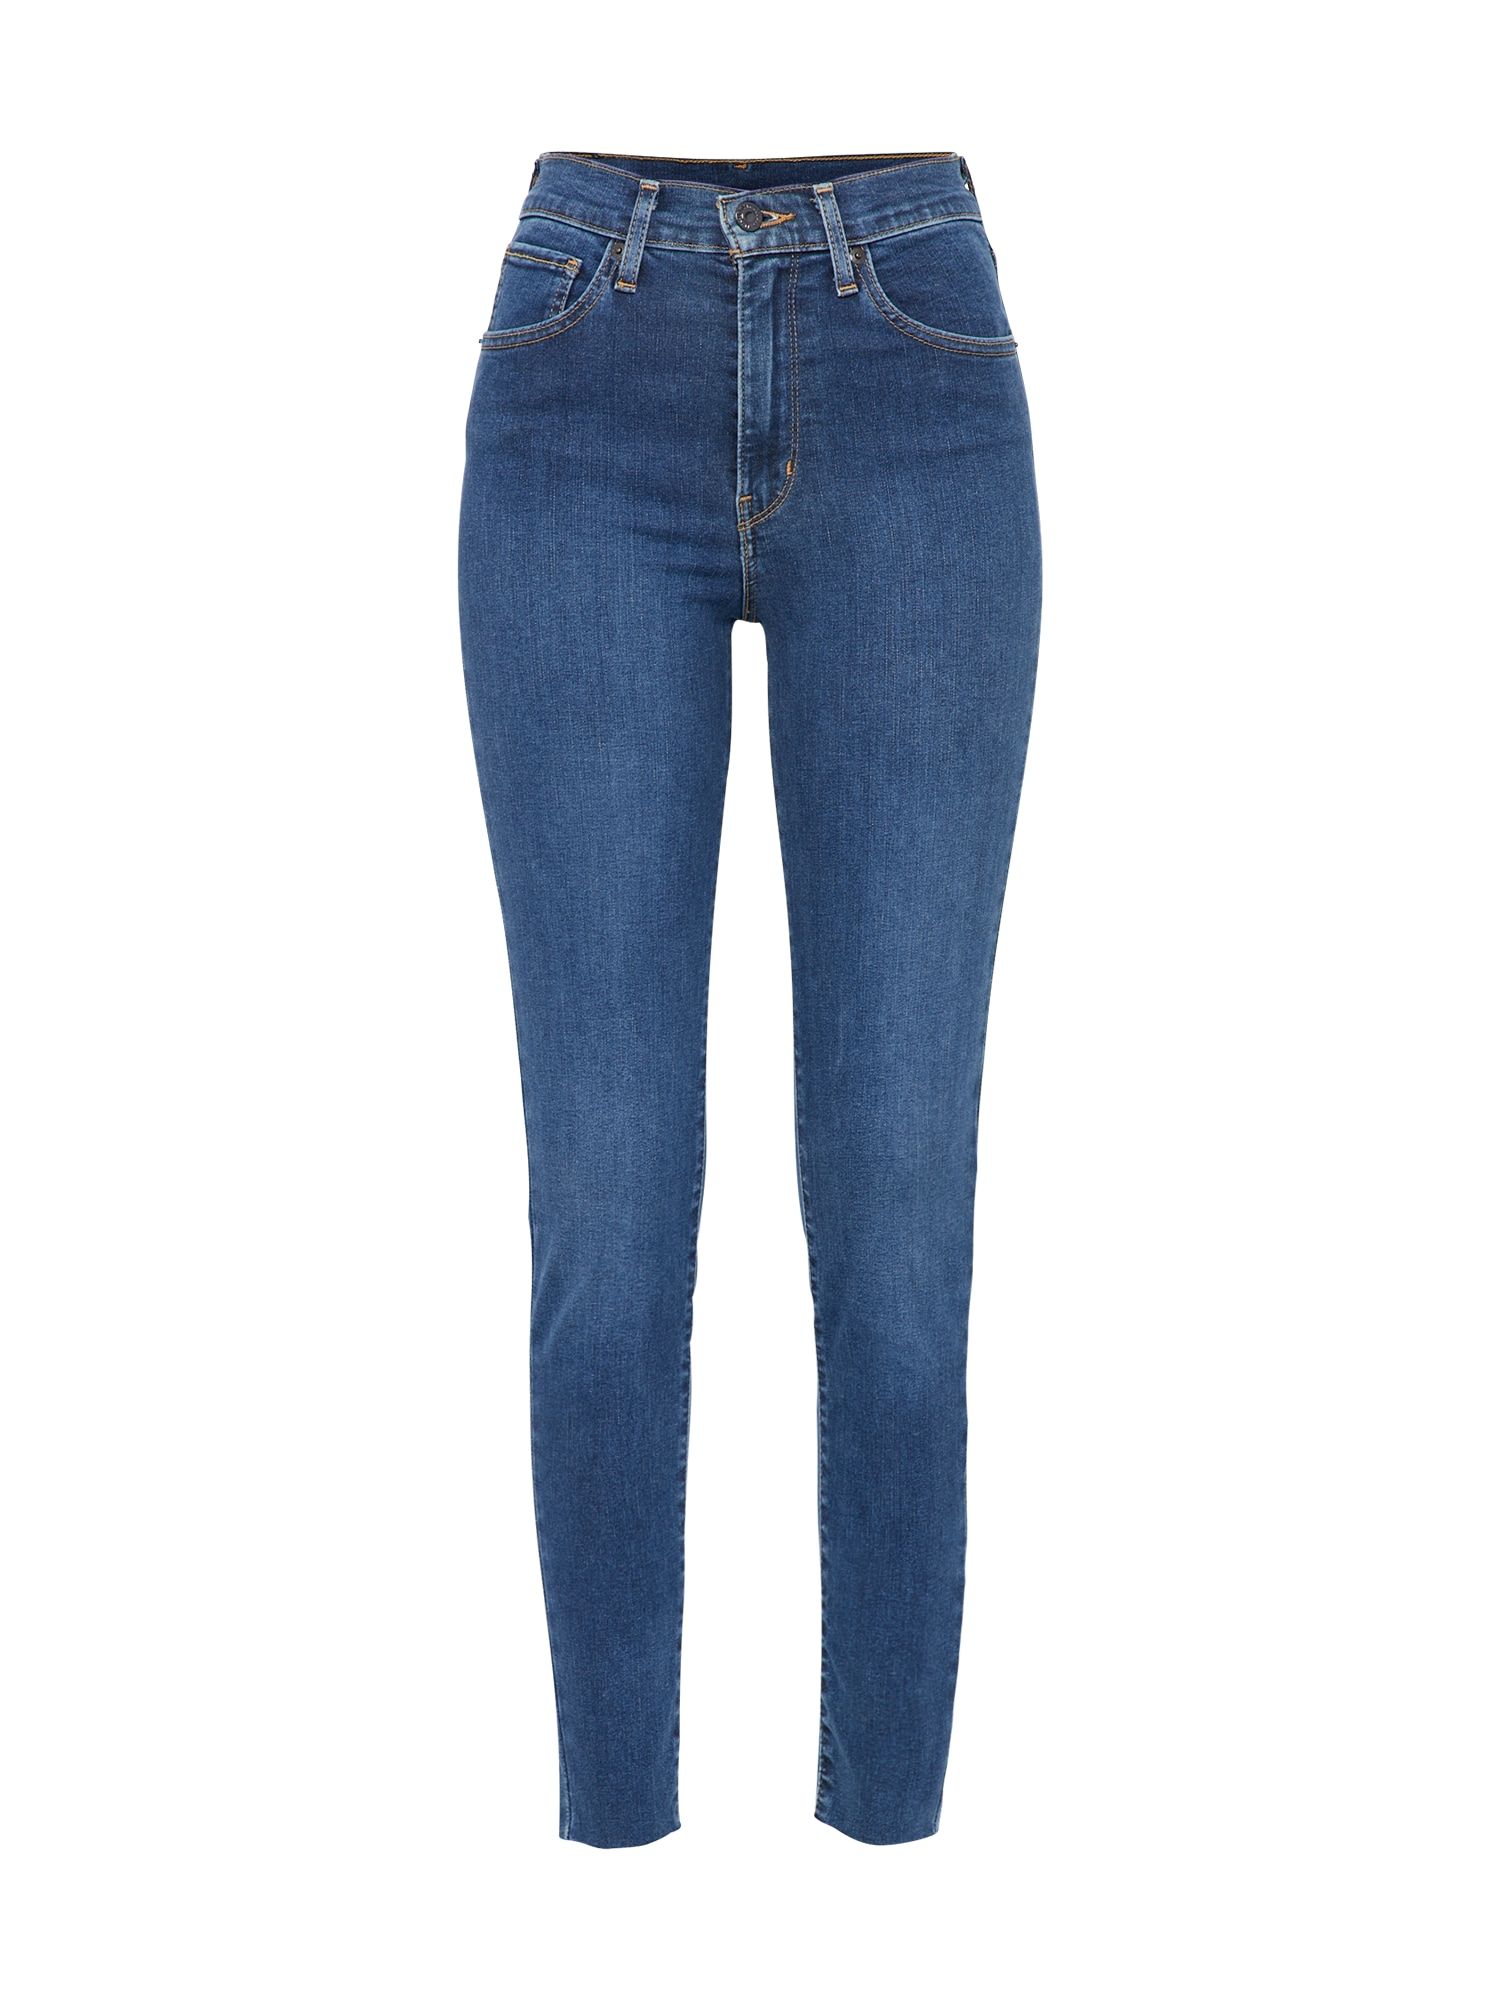 LEVI'S Dames Jeans MILE HIGH donkerblauw